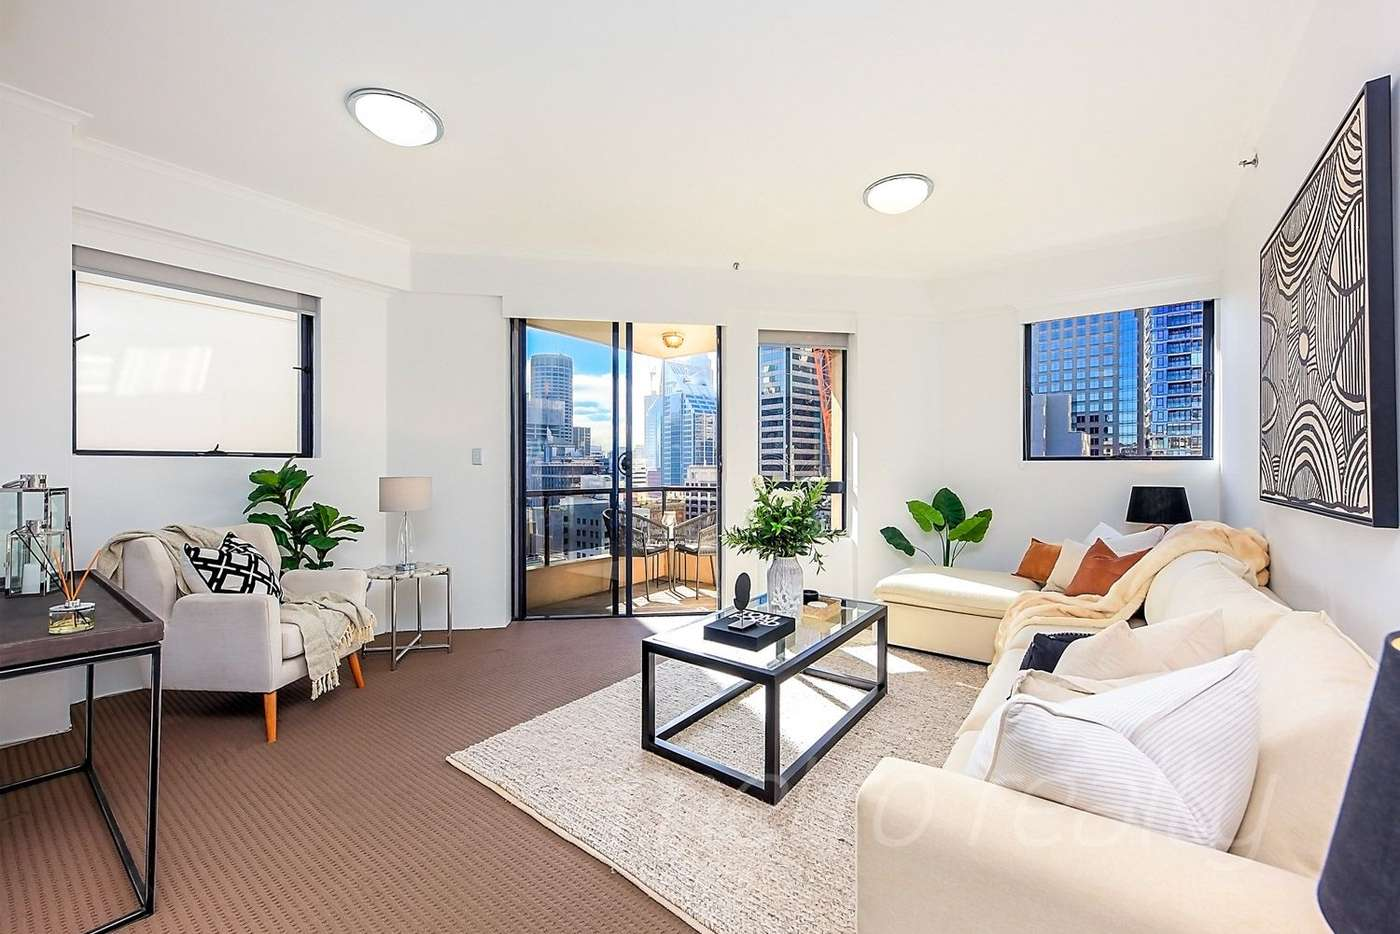 Main view of Homely apartment listing, 170/365 Kent St, Sydney NSW 2000